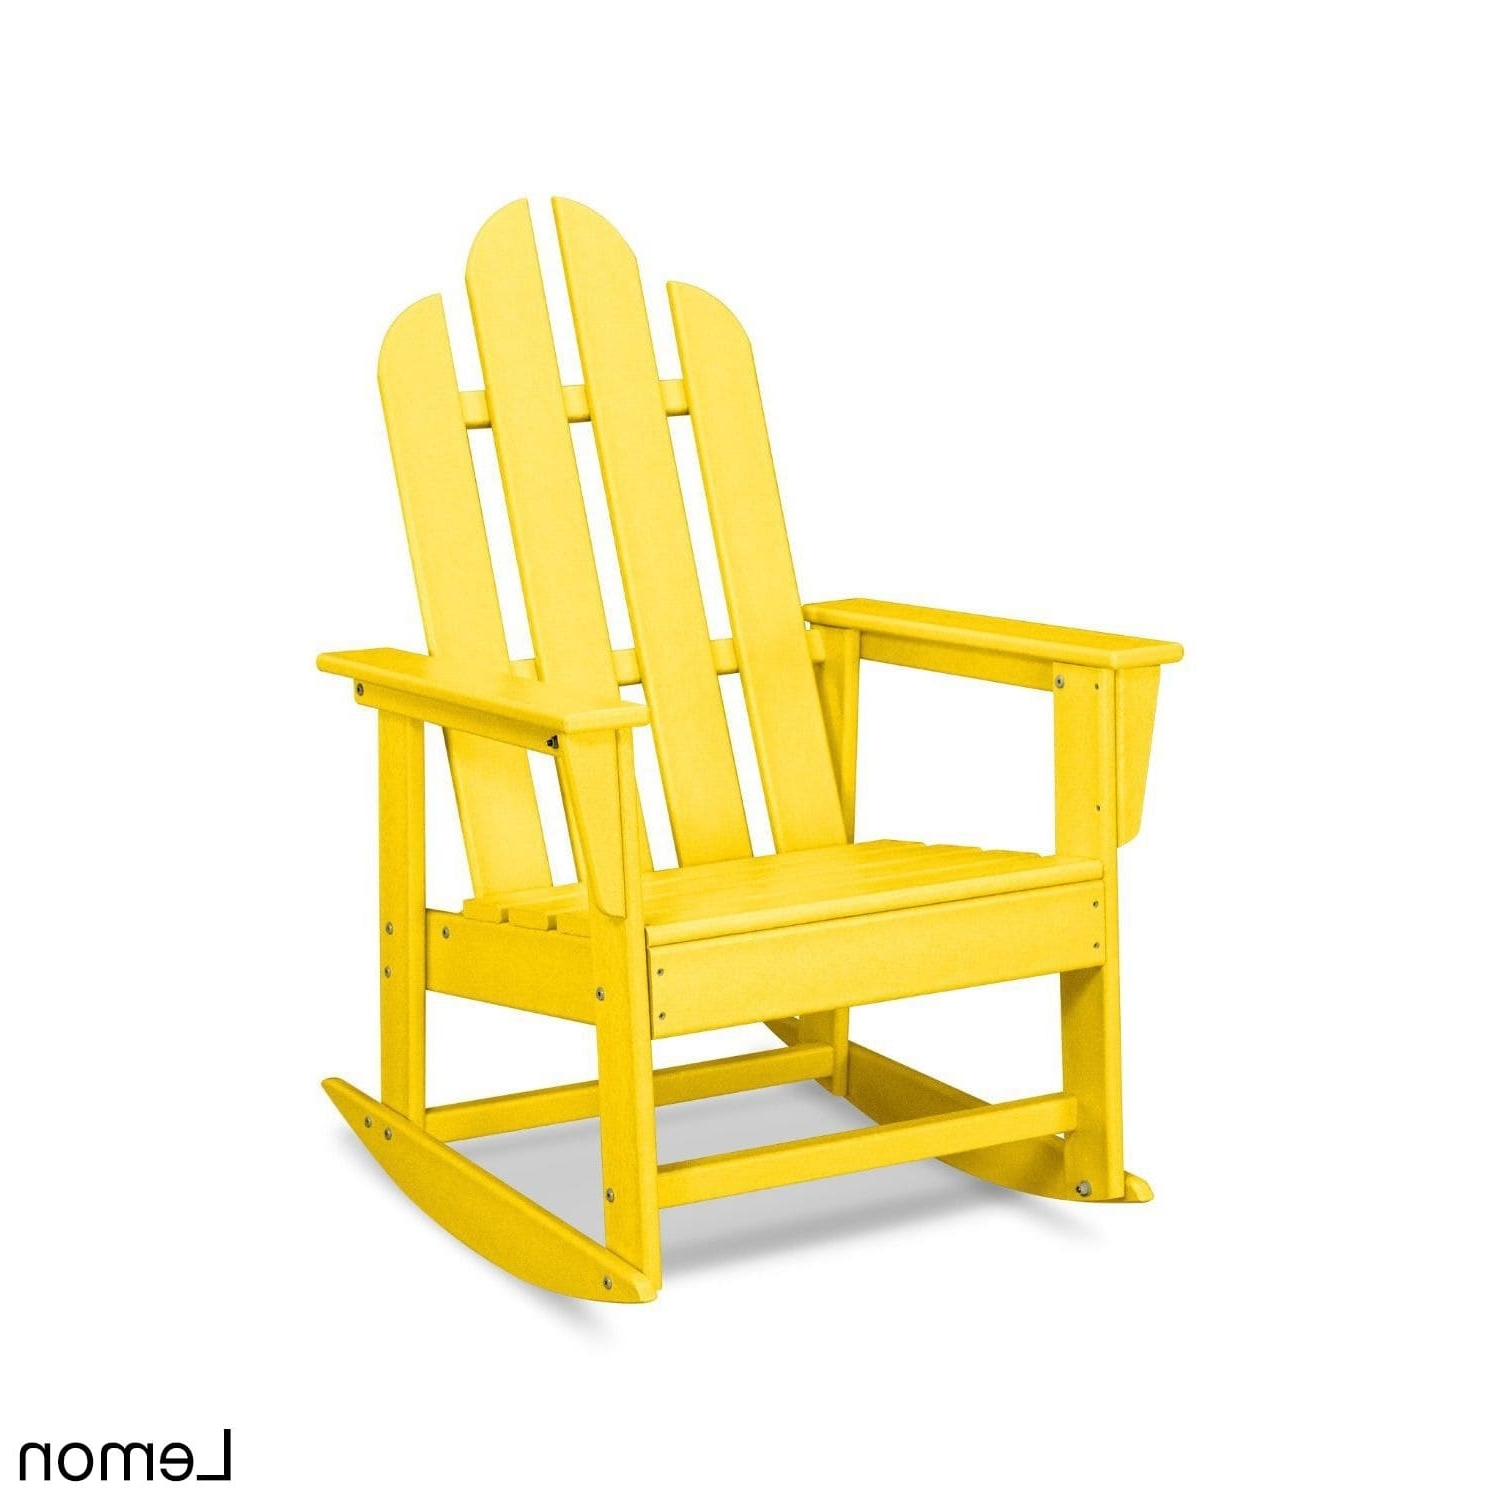 Yellow Outdoor Rocking Chairs Intended For Most Current Shop Polywood Long Island Outdoor Rocking Chair – Free Shipping (View 12 of 15)